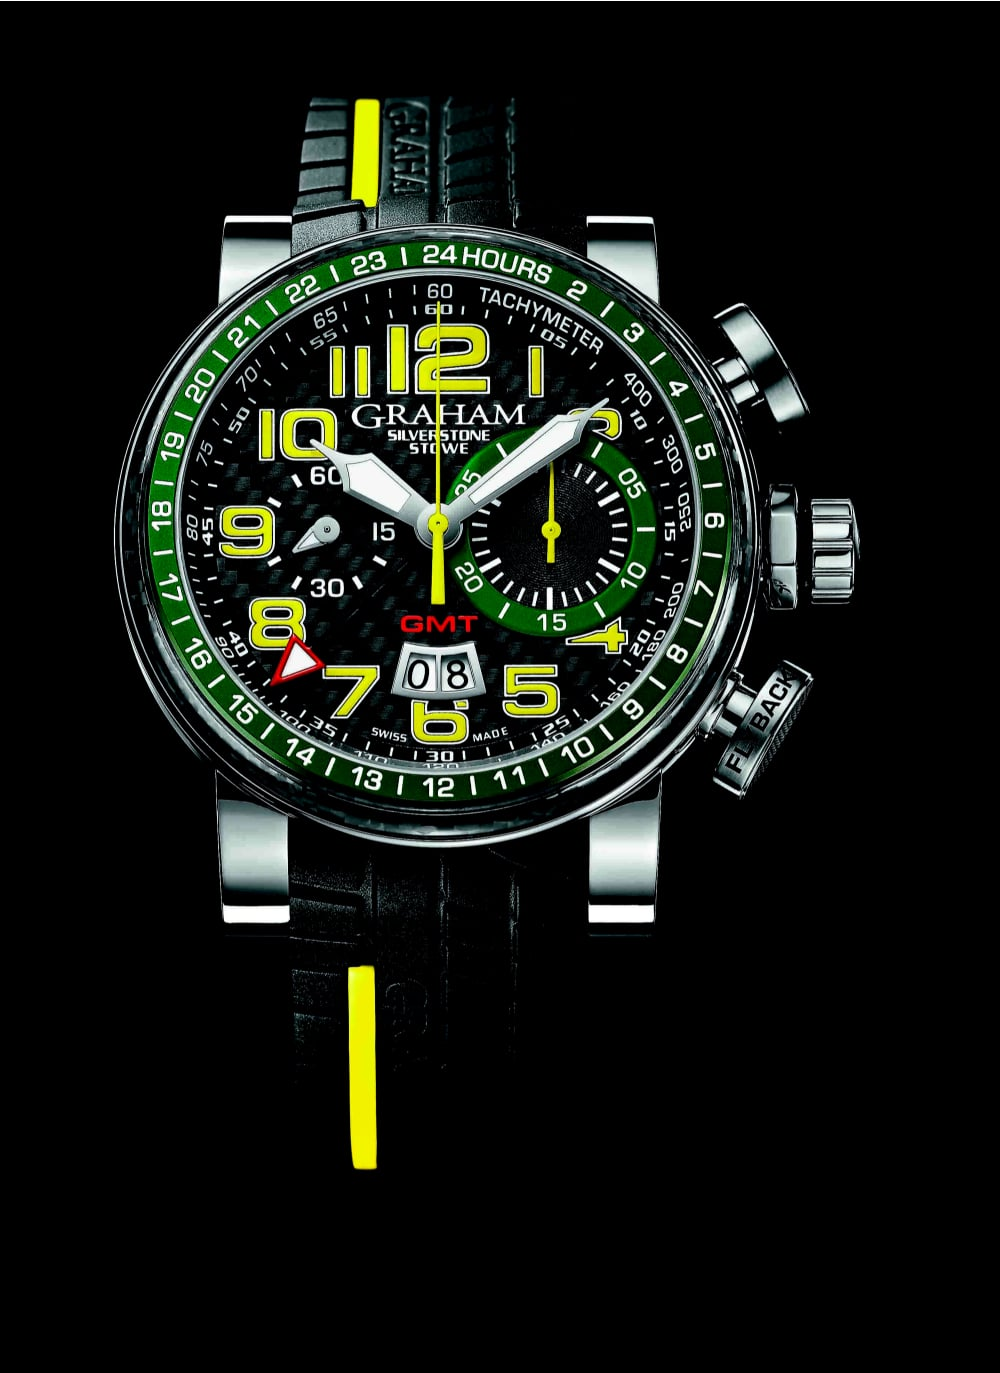 Graham Stowe GMT yellow/green